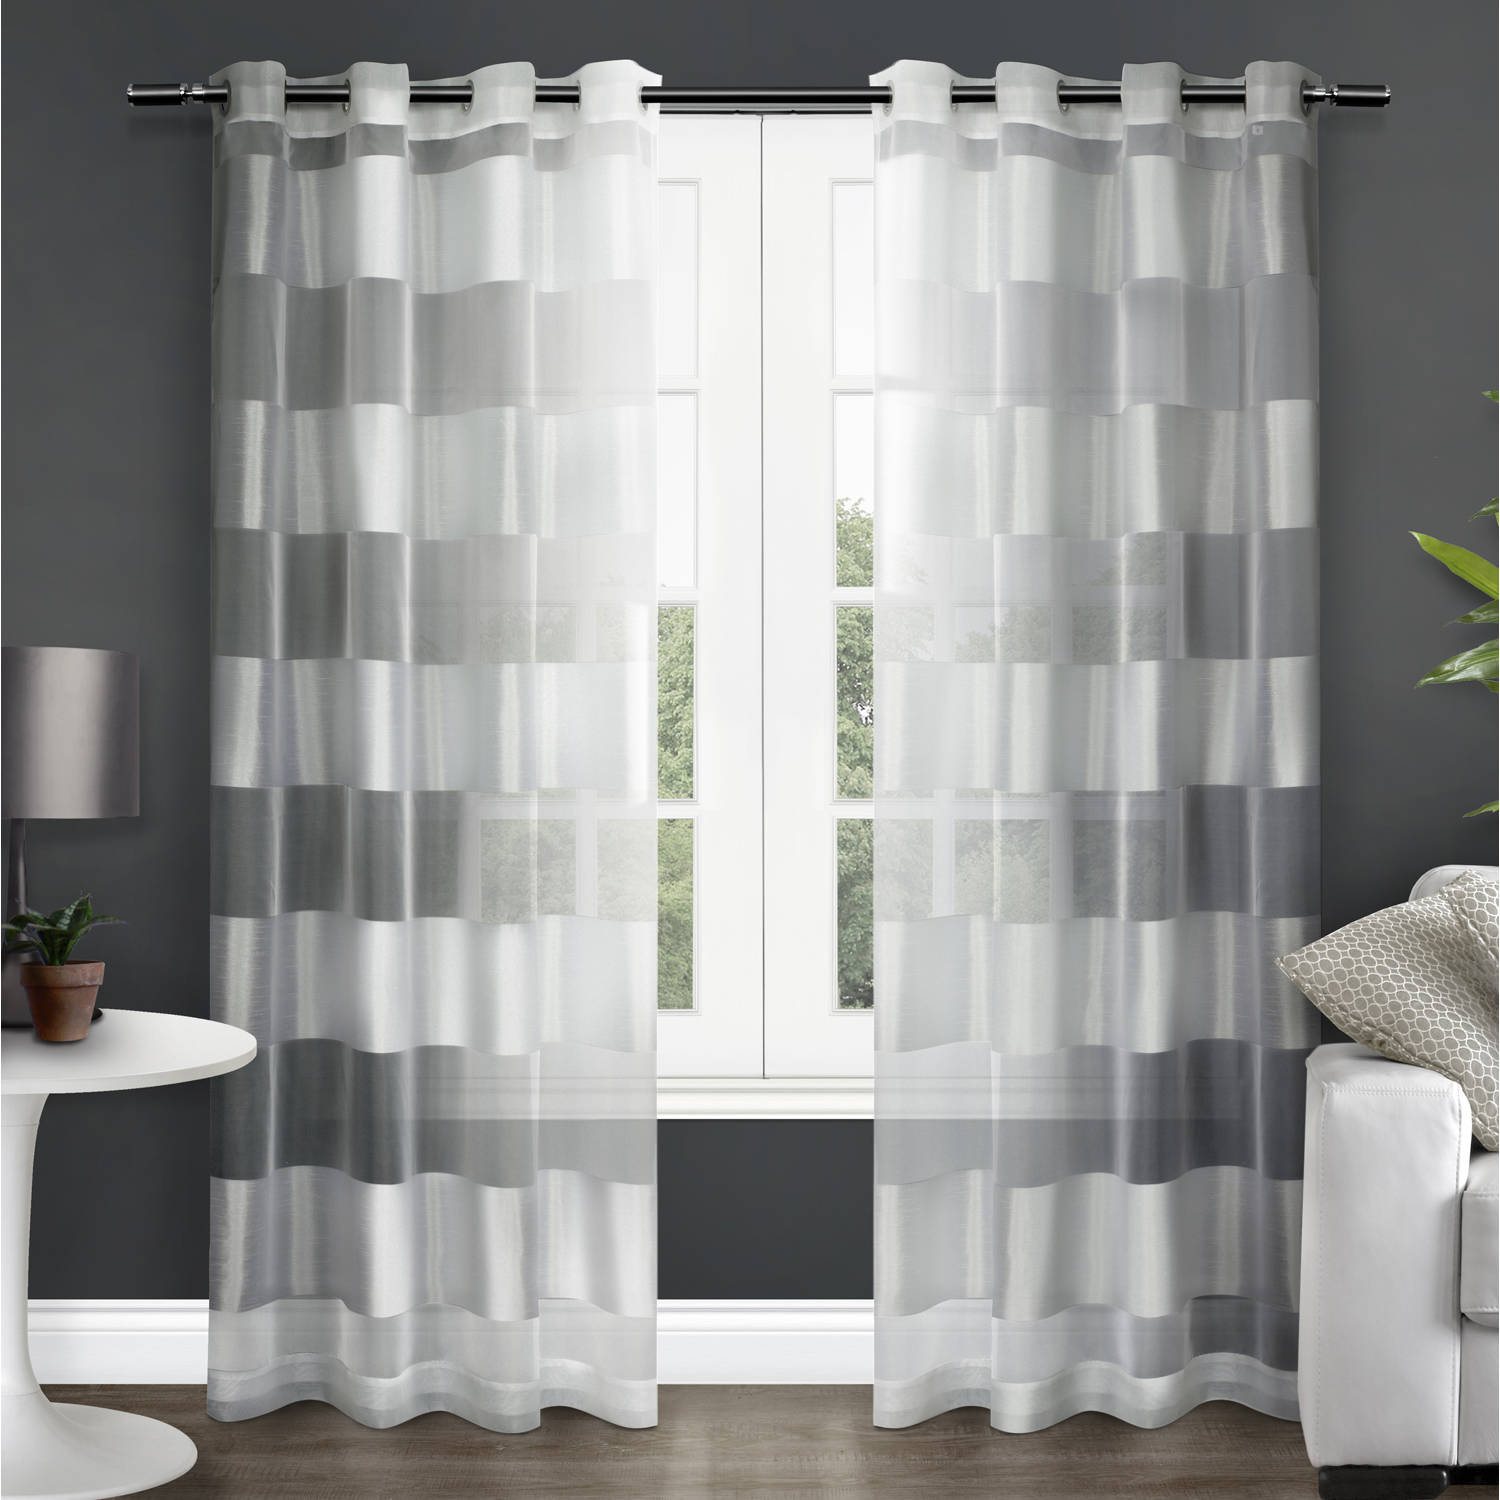 Exclusive Home Curtains 2 Pack Navaro Striped Sheer Grommet Top Curtain Panels With Regard To Ocean Striped Window Curtain Panel Pairs With Grommet Top (View 6 of 20)